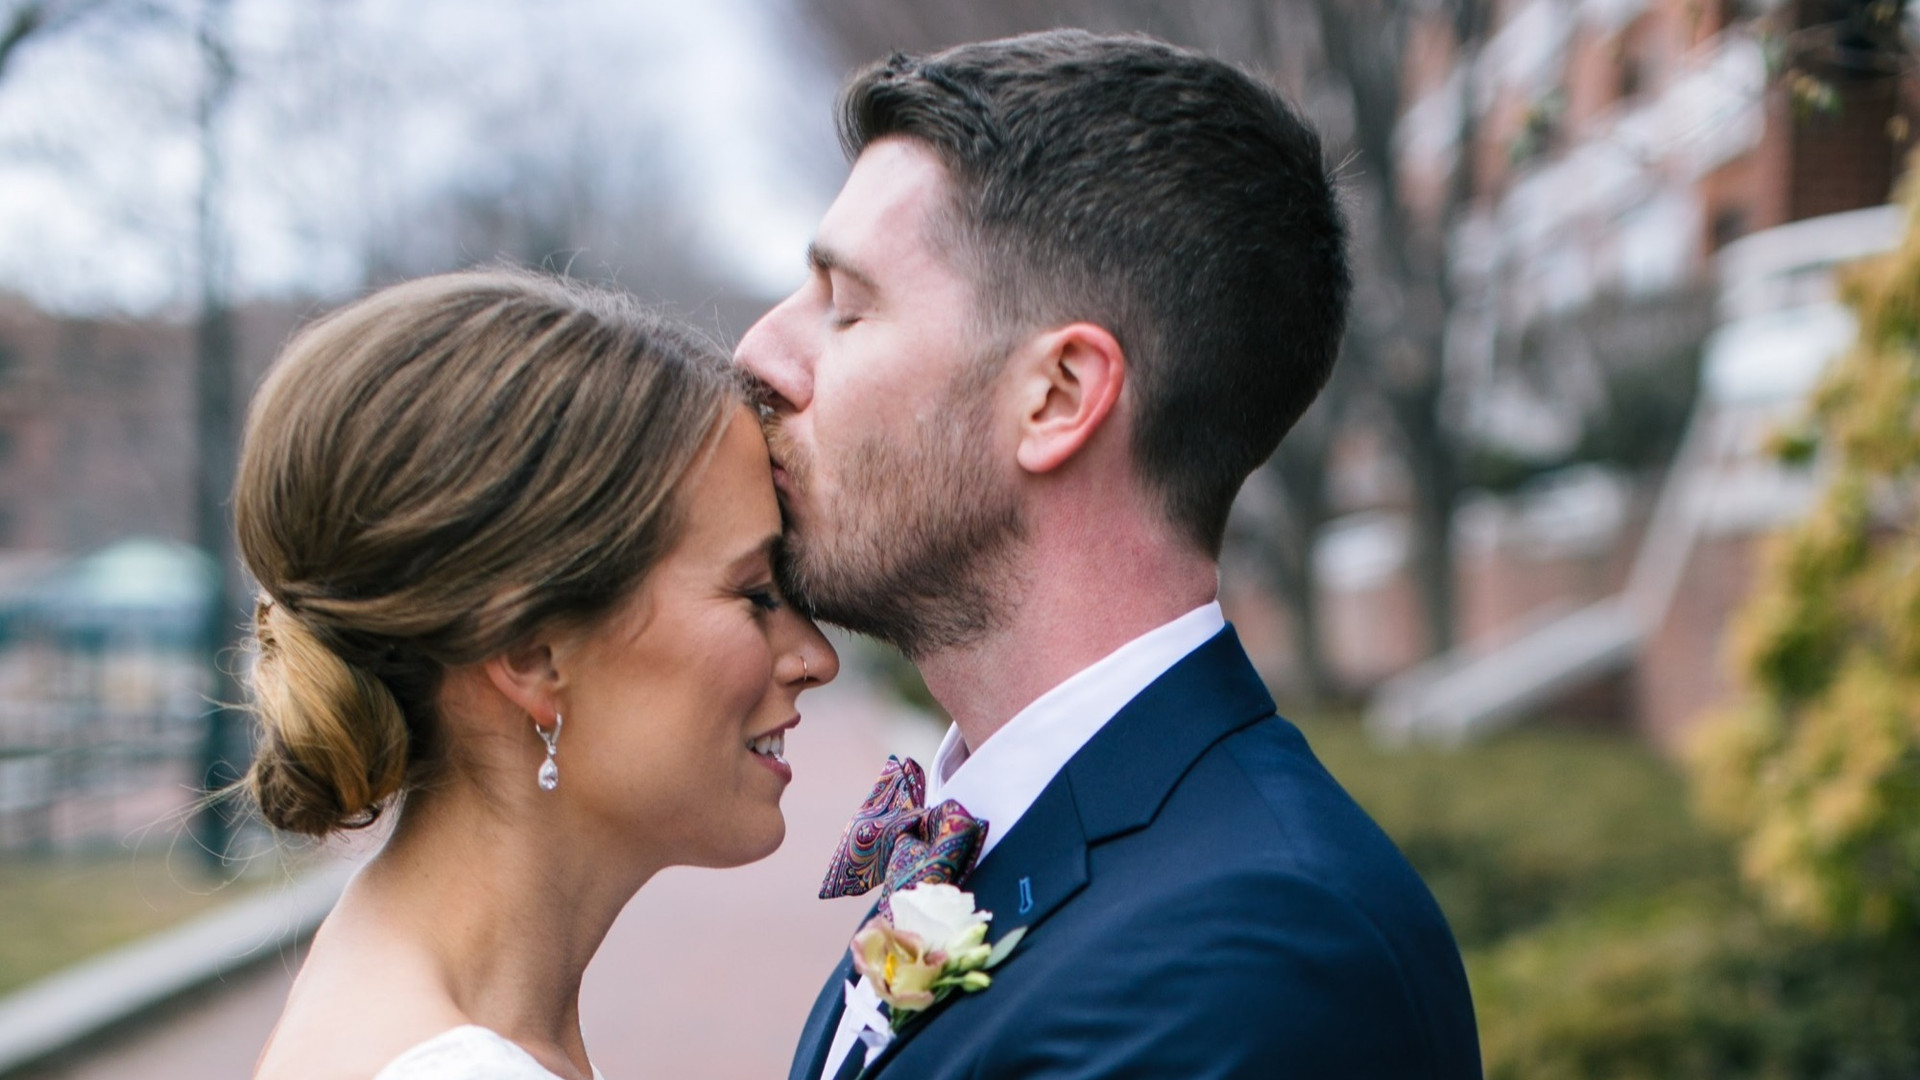 """""""I was a makeup artist for this event and it could not have gone more smoothly due to Samantha's attention to detail and calm nature. She was in constant communication with me and was so prompt with her responses. I will definitely be recommending her to my brides in the future!"""" Jennifer Viveiros of @jmv_makeup_team"""